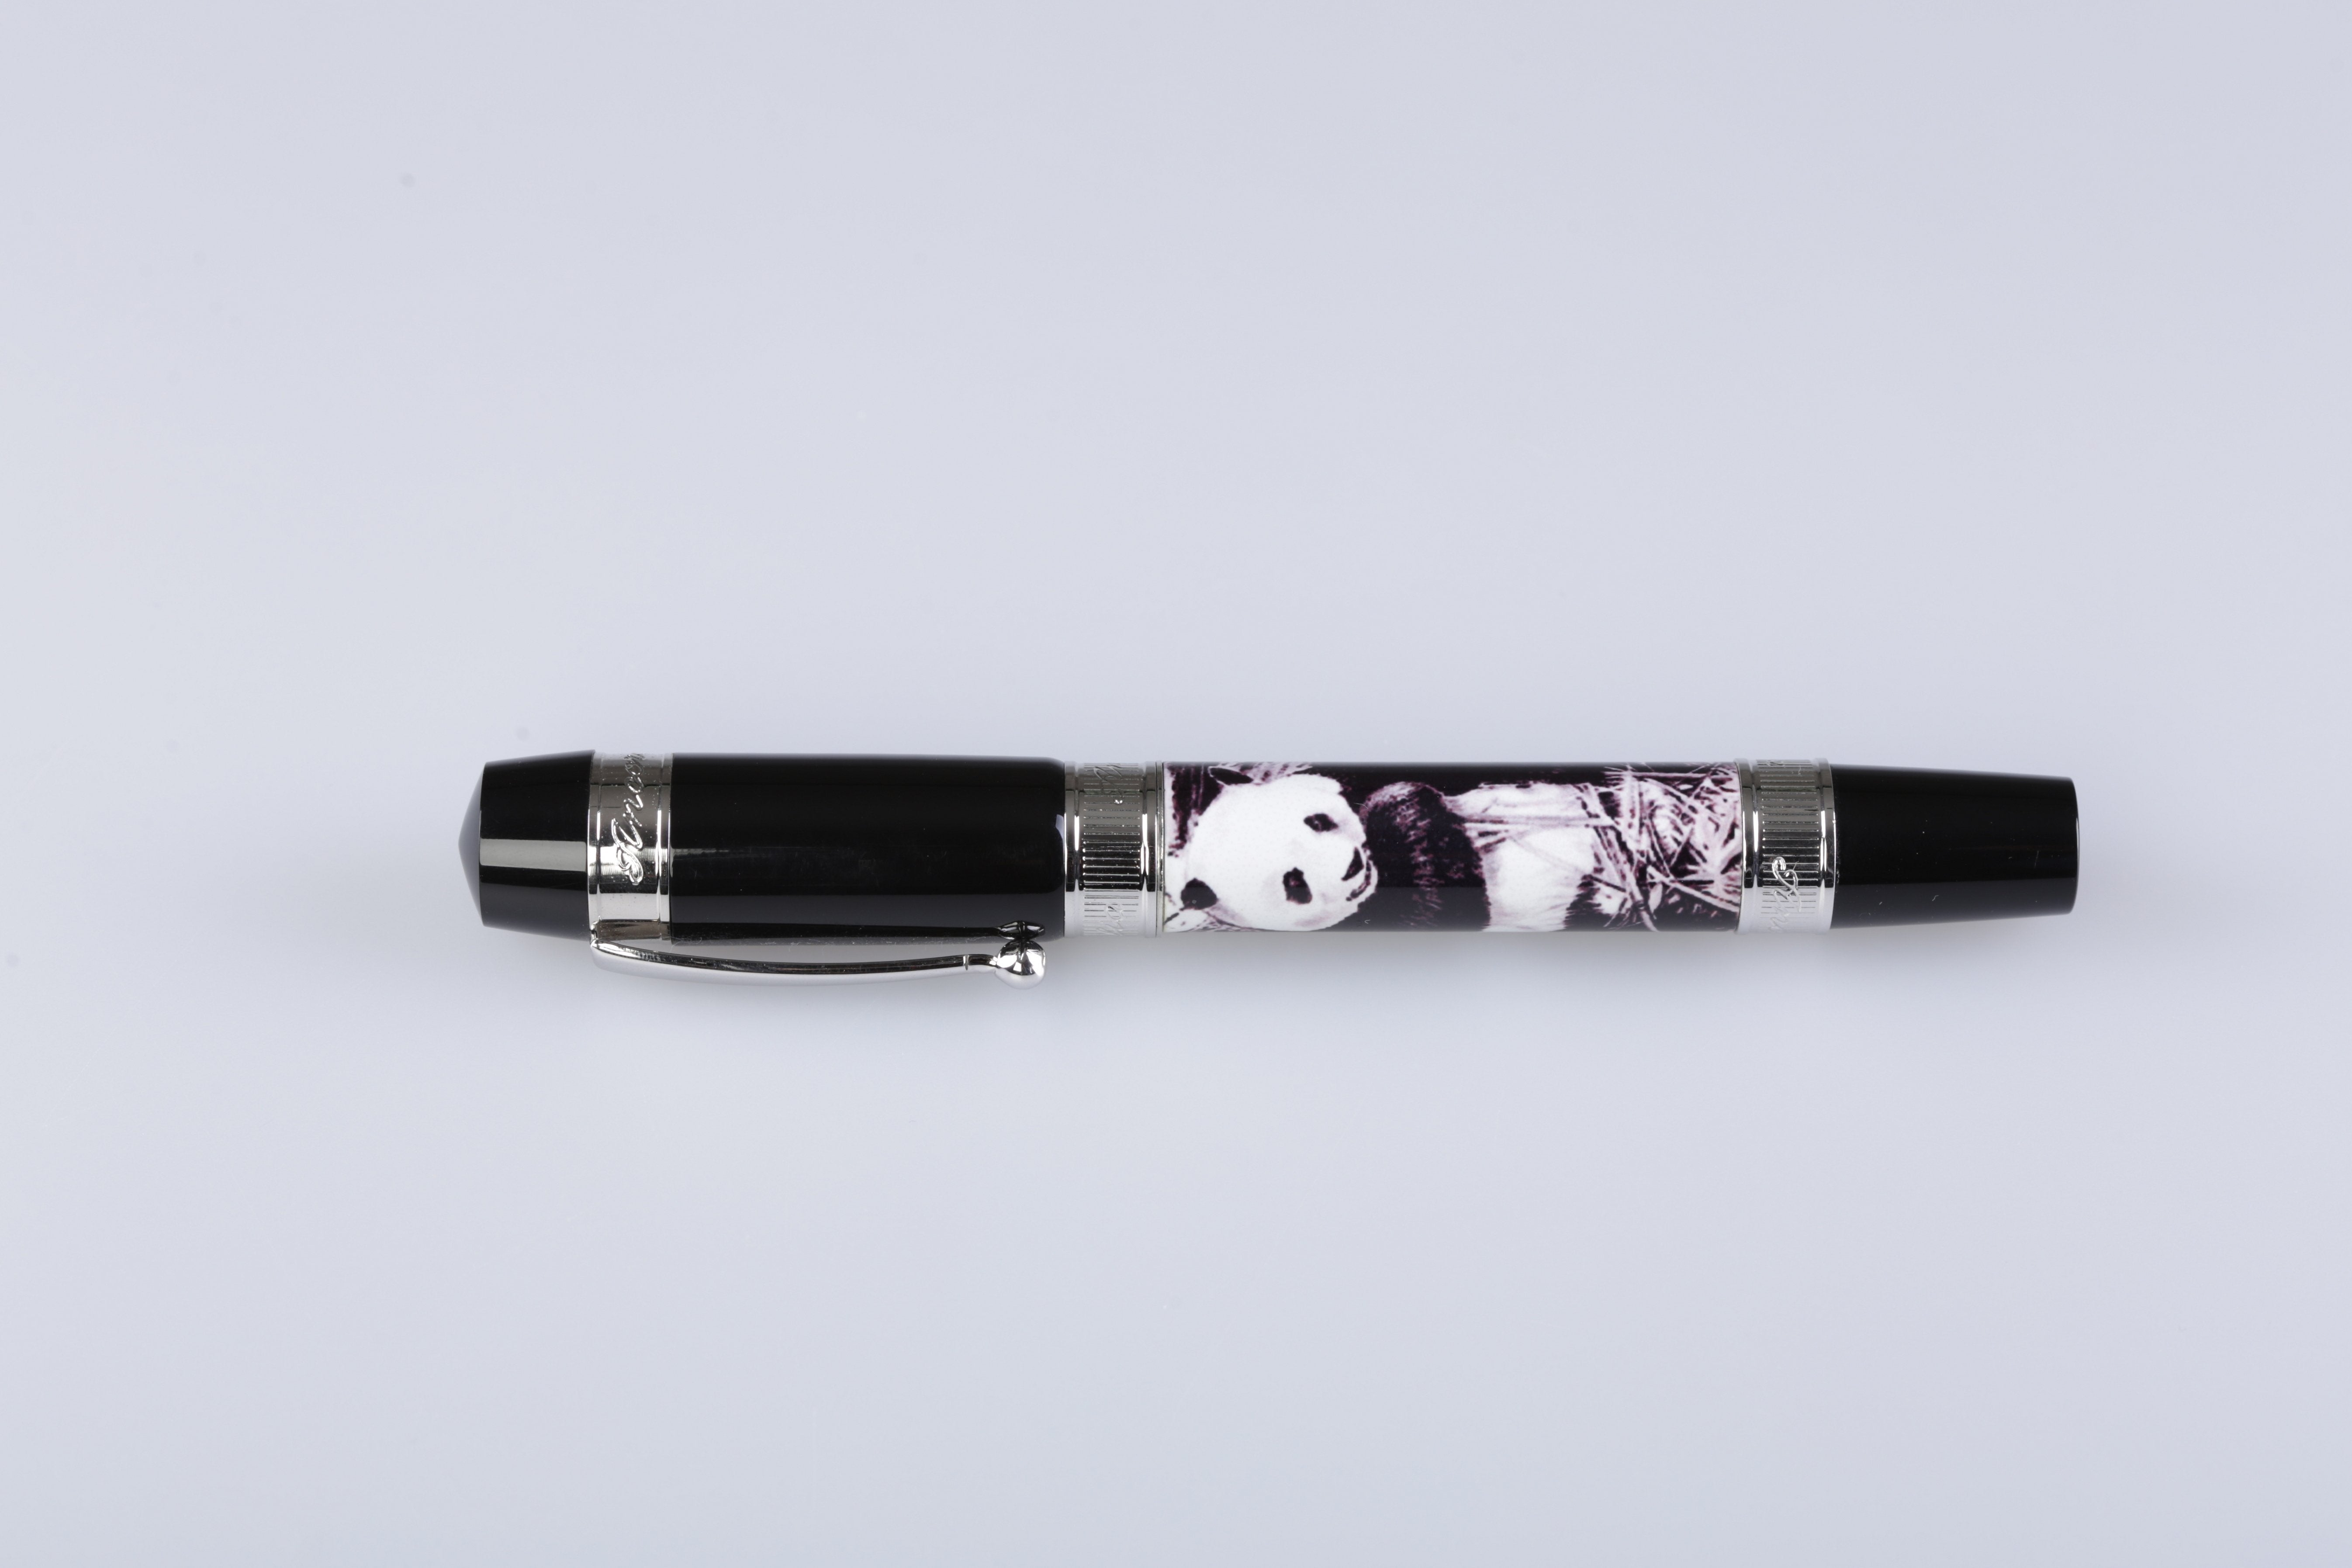 Panda Black Fountain pen